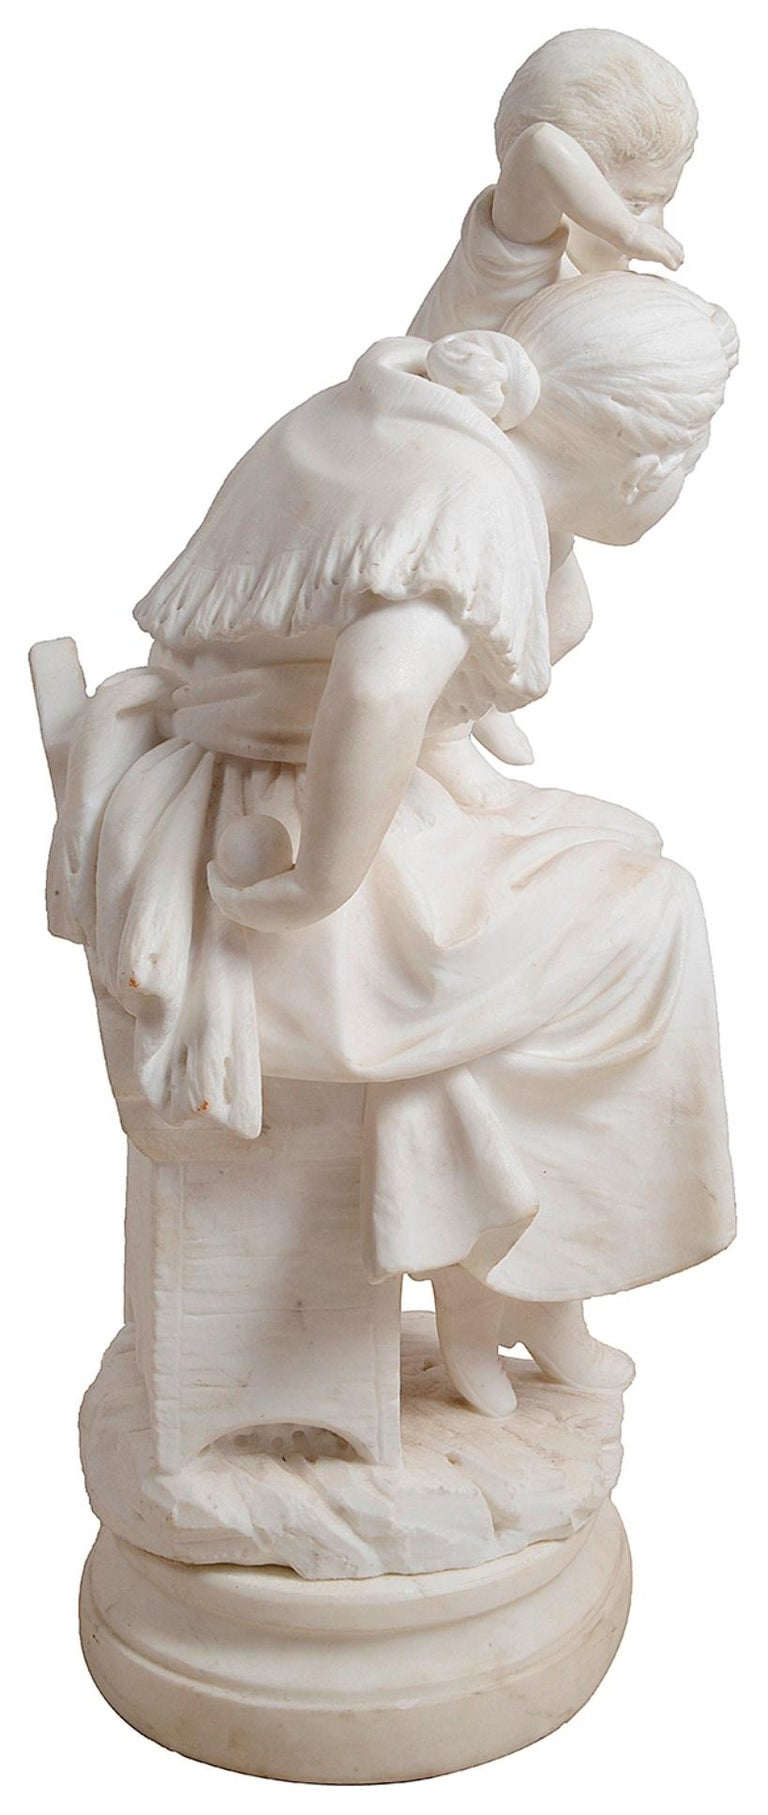 19th Century Marble Statue of Mother and Child In Good Condition For Sale In Brighton, Sussex